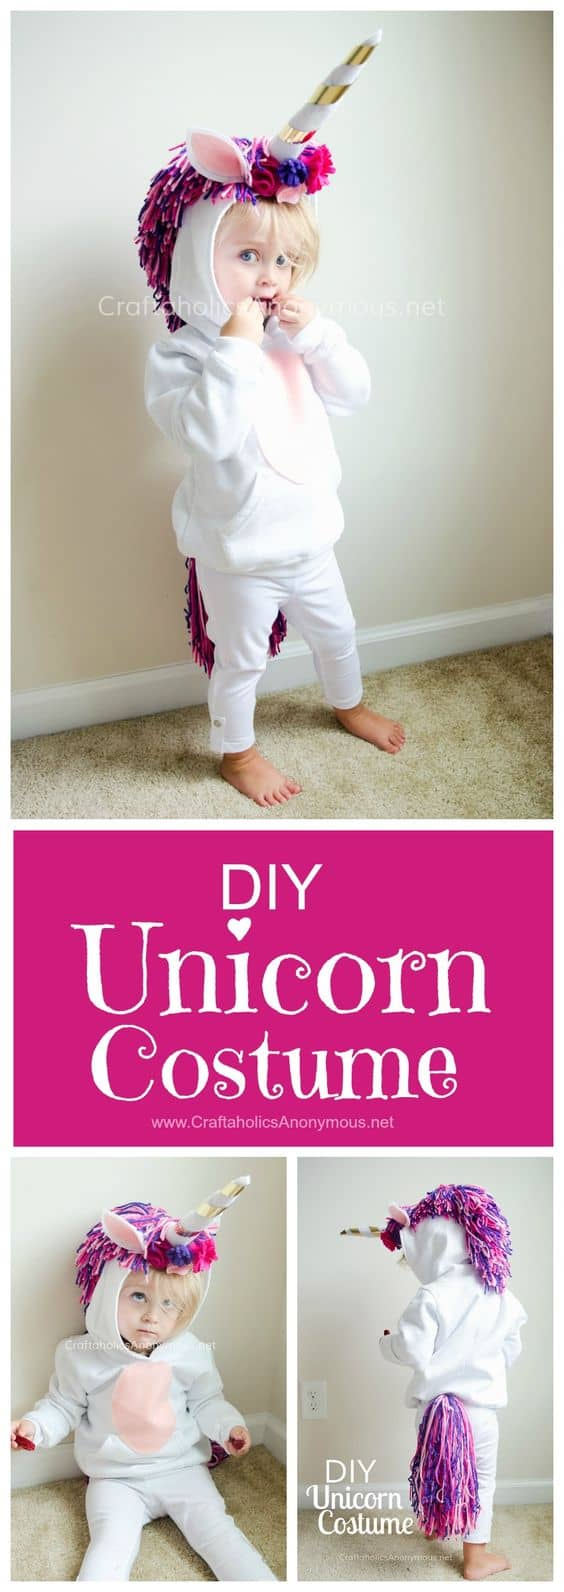 DIY Halloween Costumes for Kids – try them in 2017! Family Halloween costumes, DIY ideas for couples, women, kids. Explore these DIY costumes and Halloween Ideas for 2017!